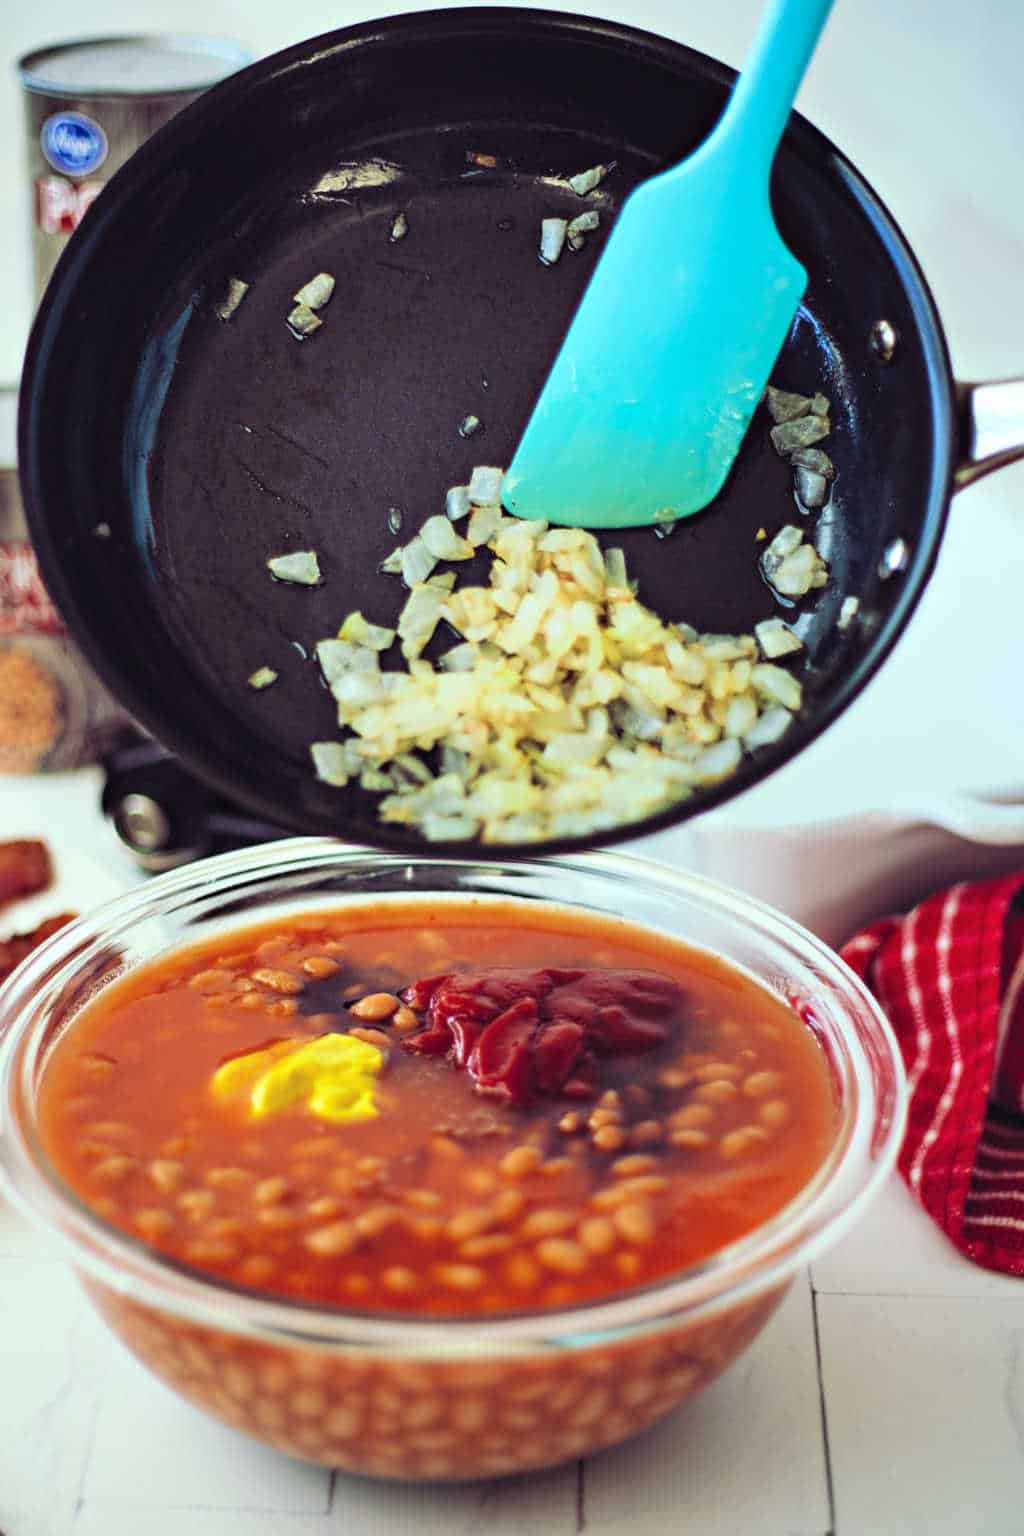 preparing baked beans with onions